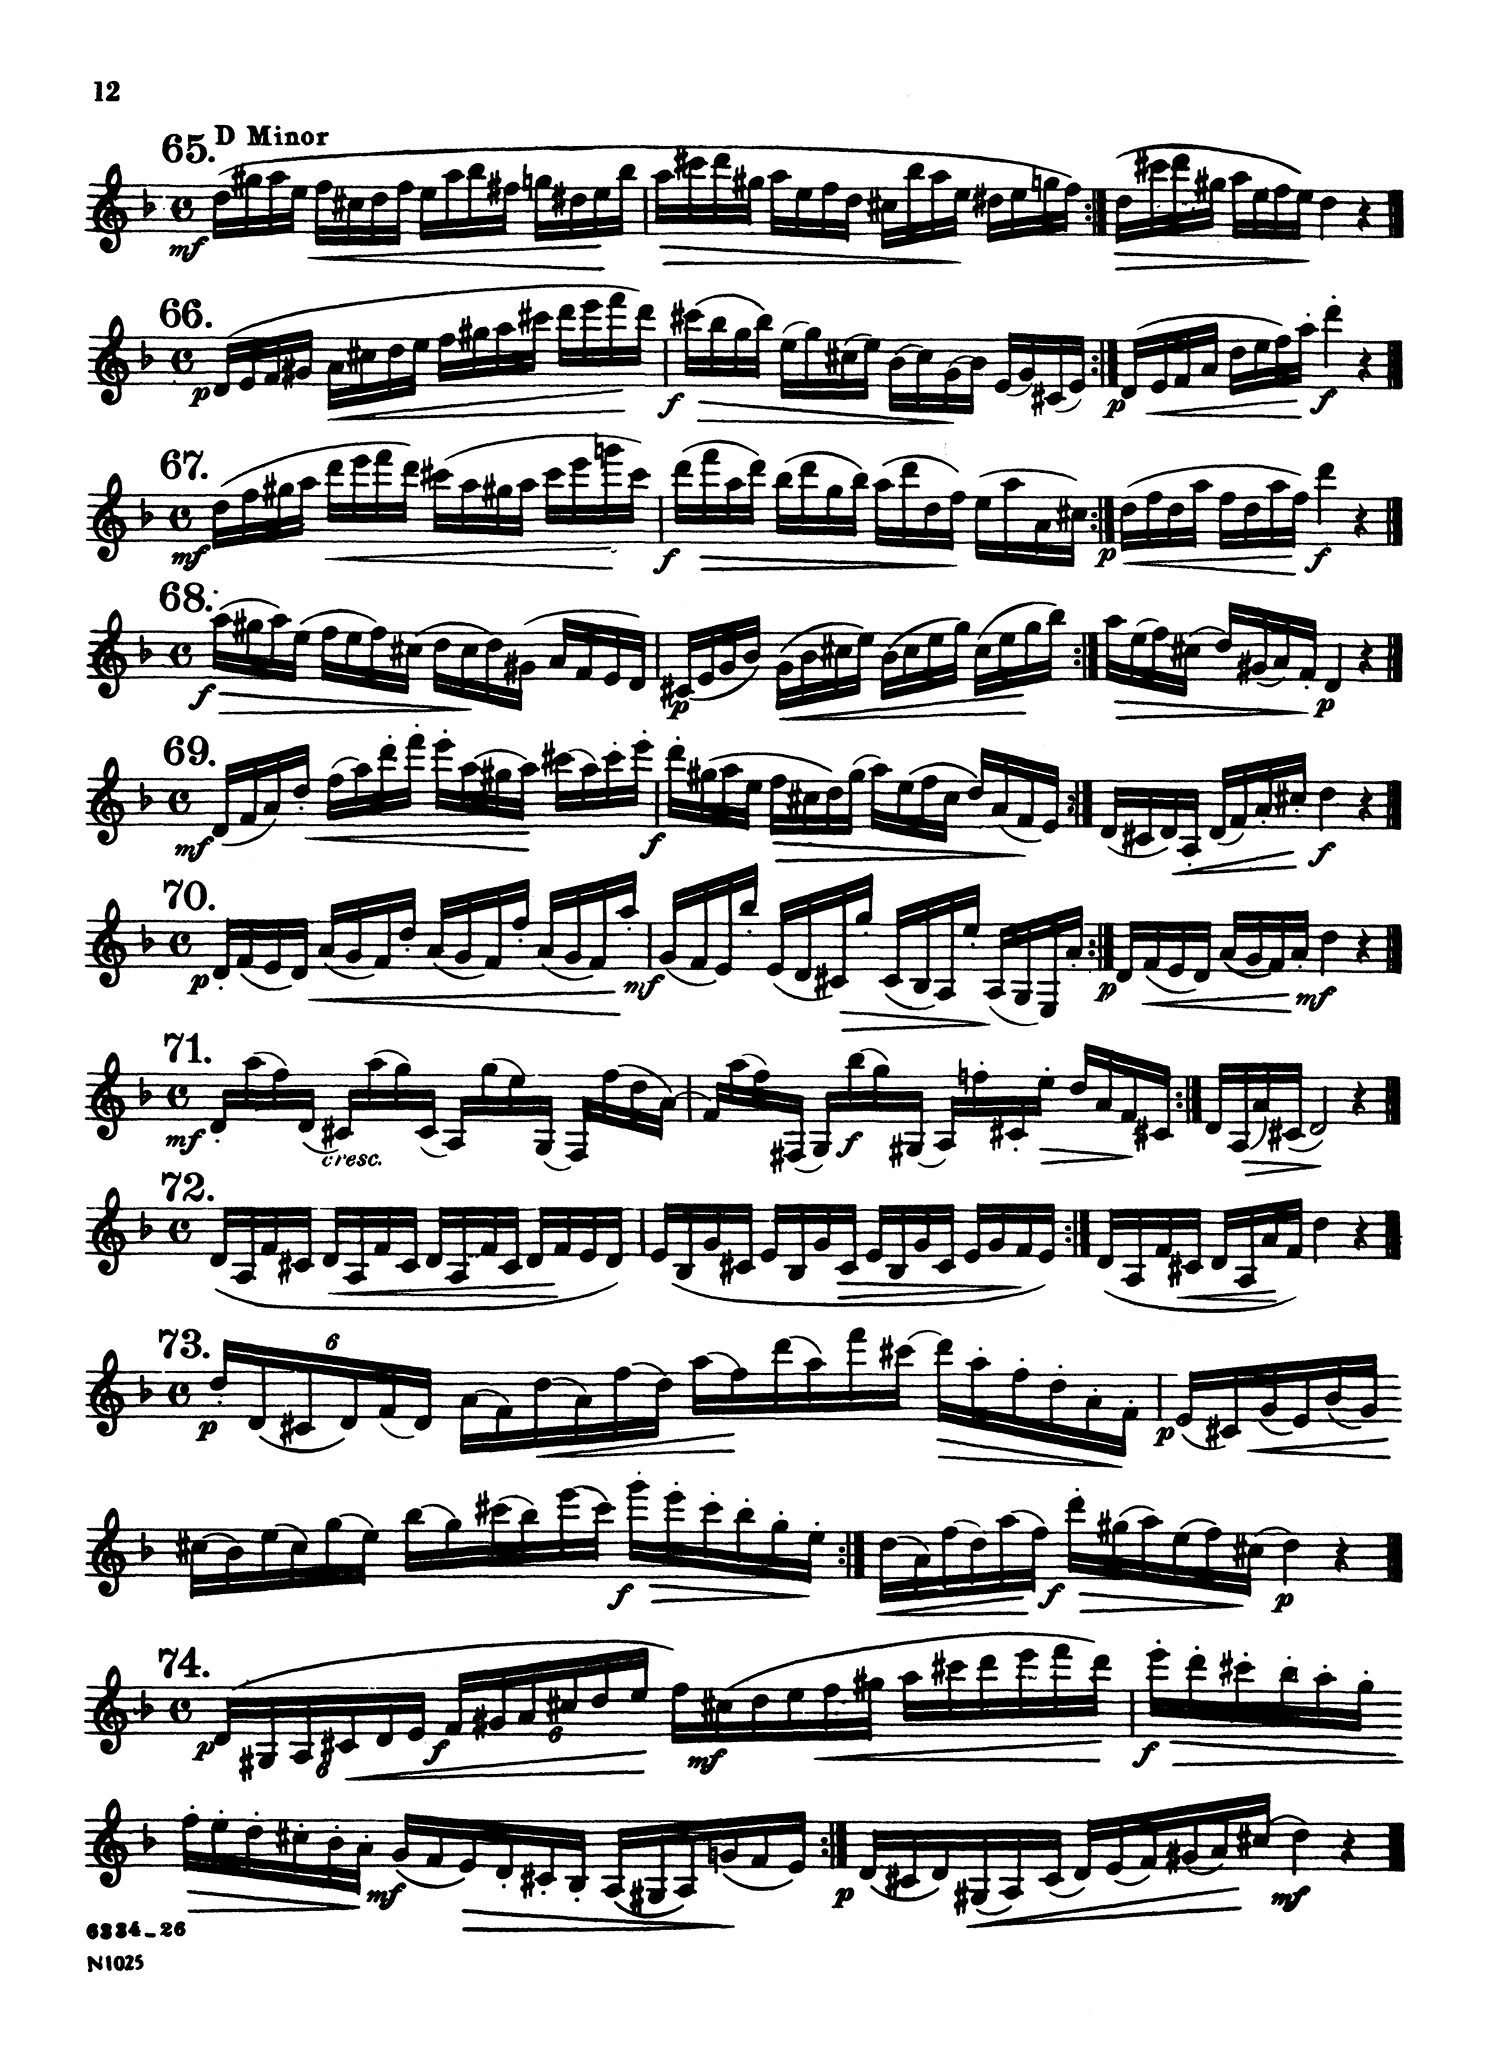 416 Progressive Studies for Clarinet, Book 1 Page 12